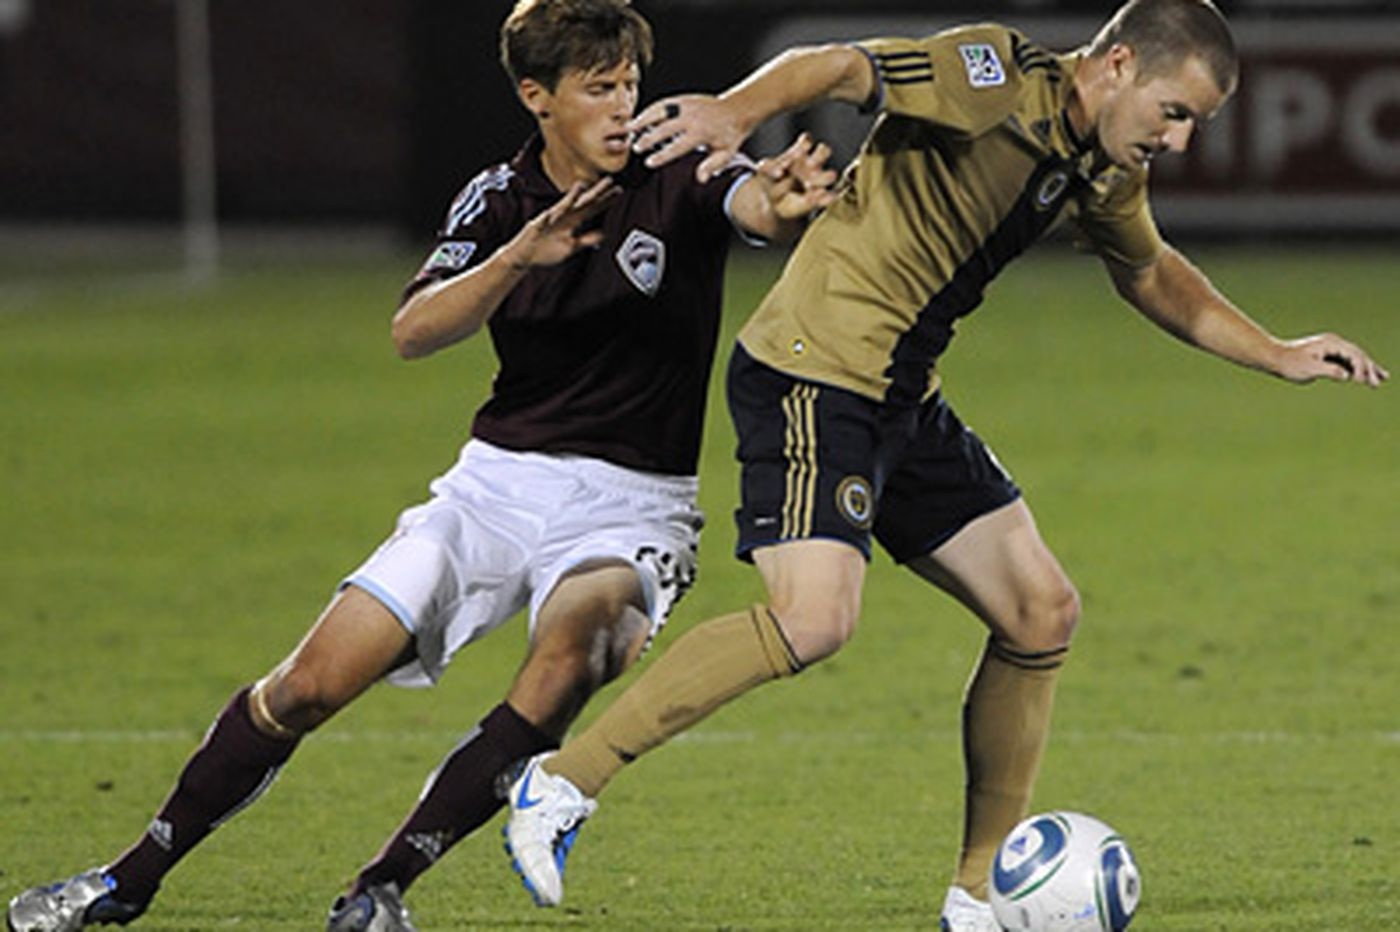 Union doesn't fit into playoff equation this season